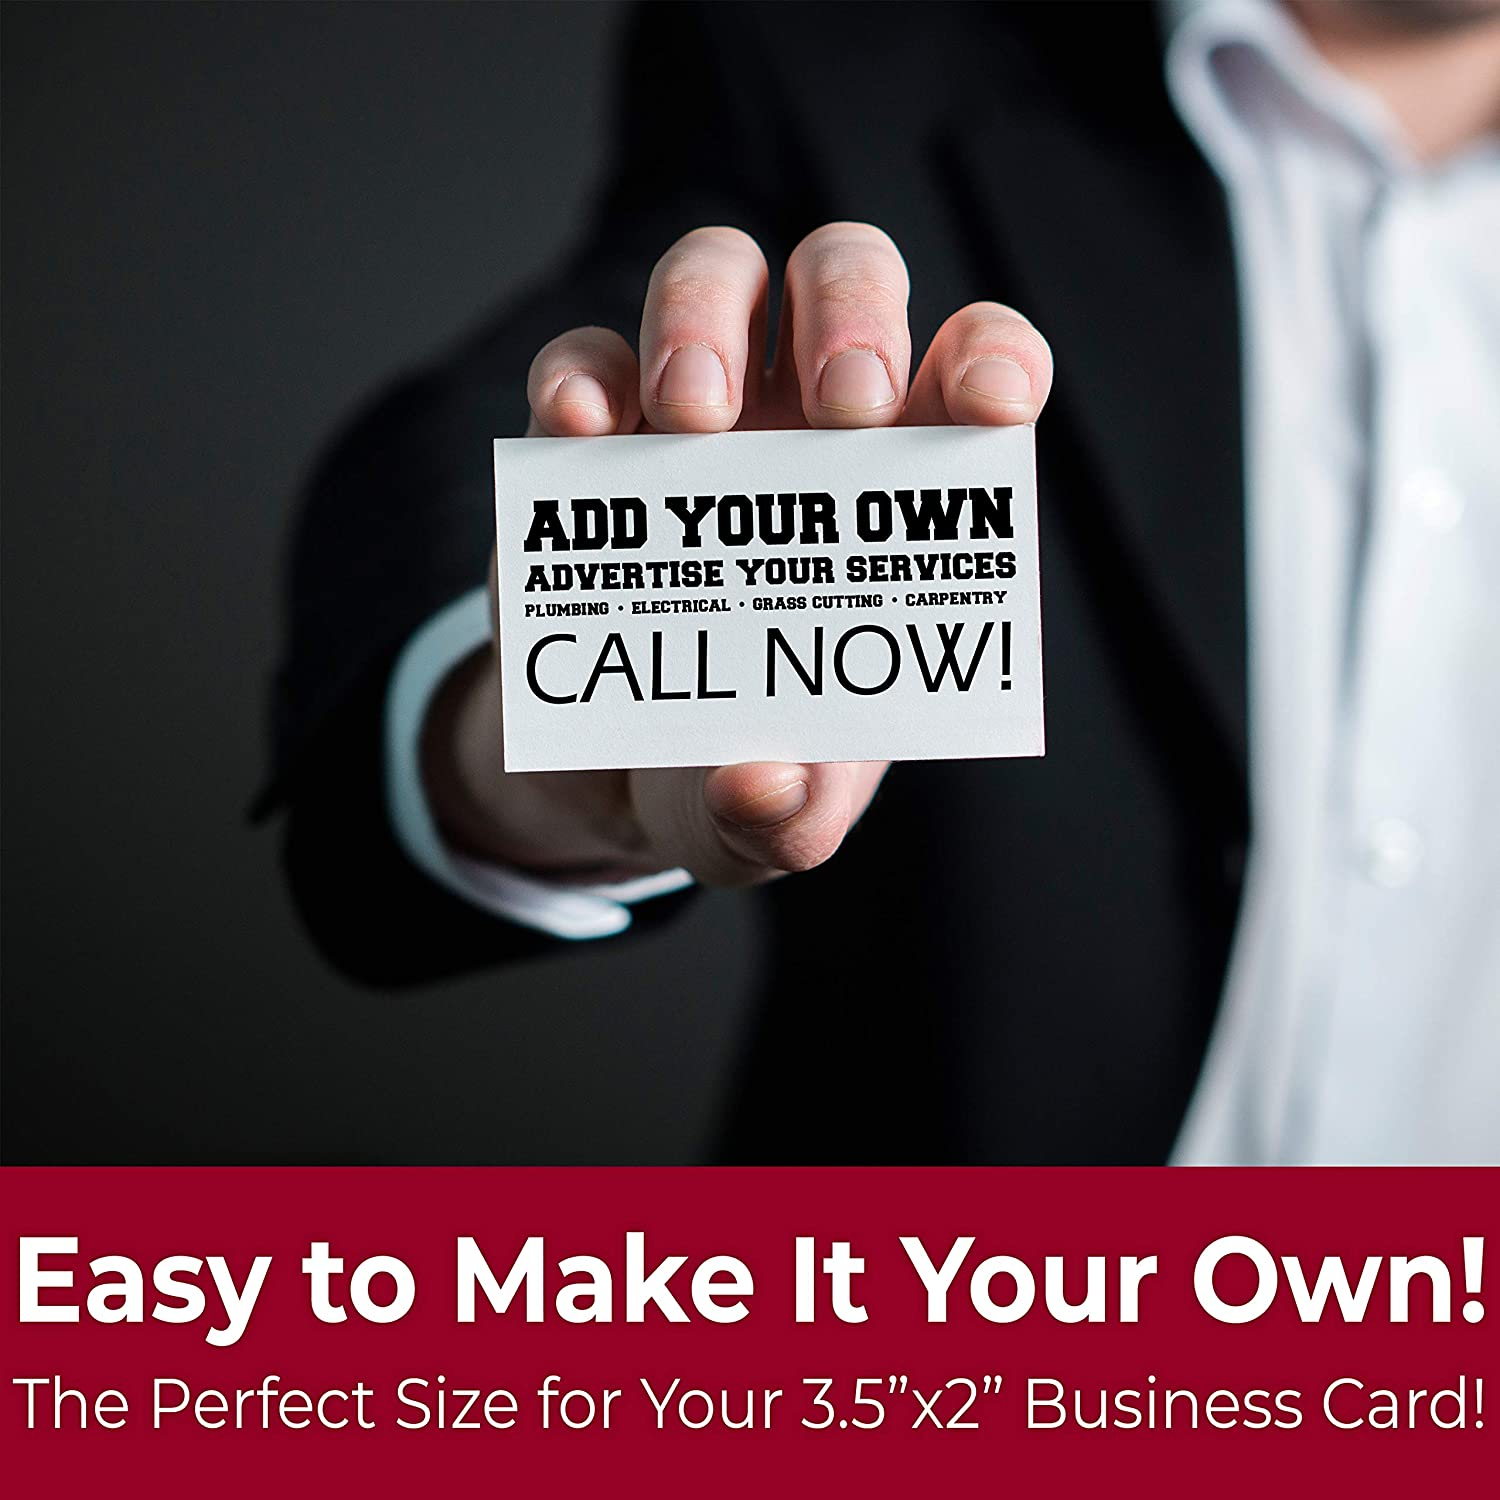 Pro-Grade Adhesive Business Card Magnets 100pk Strong Blank Peel-and-Stick 2in x 3.5in Magnetizers Turn Company Cards Into Magnetic Contact Info Flexible and Small for Realtors Ads and Promotions